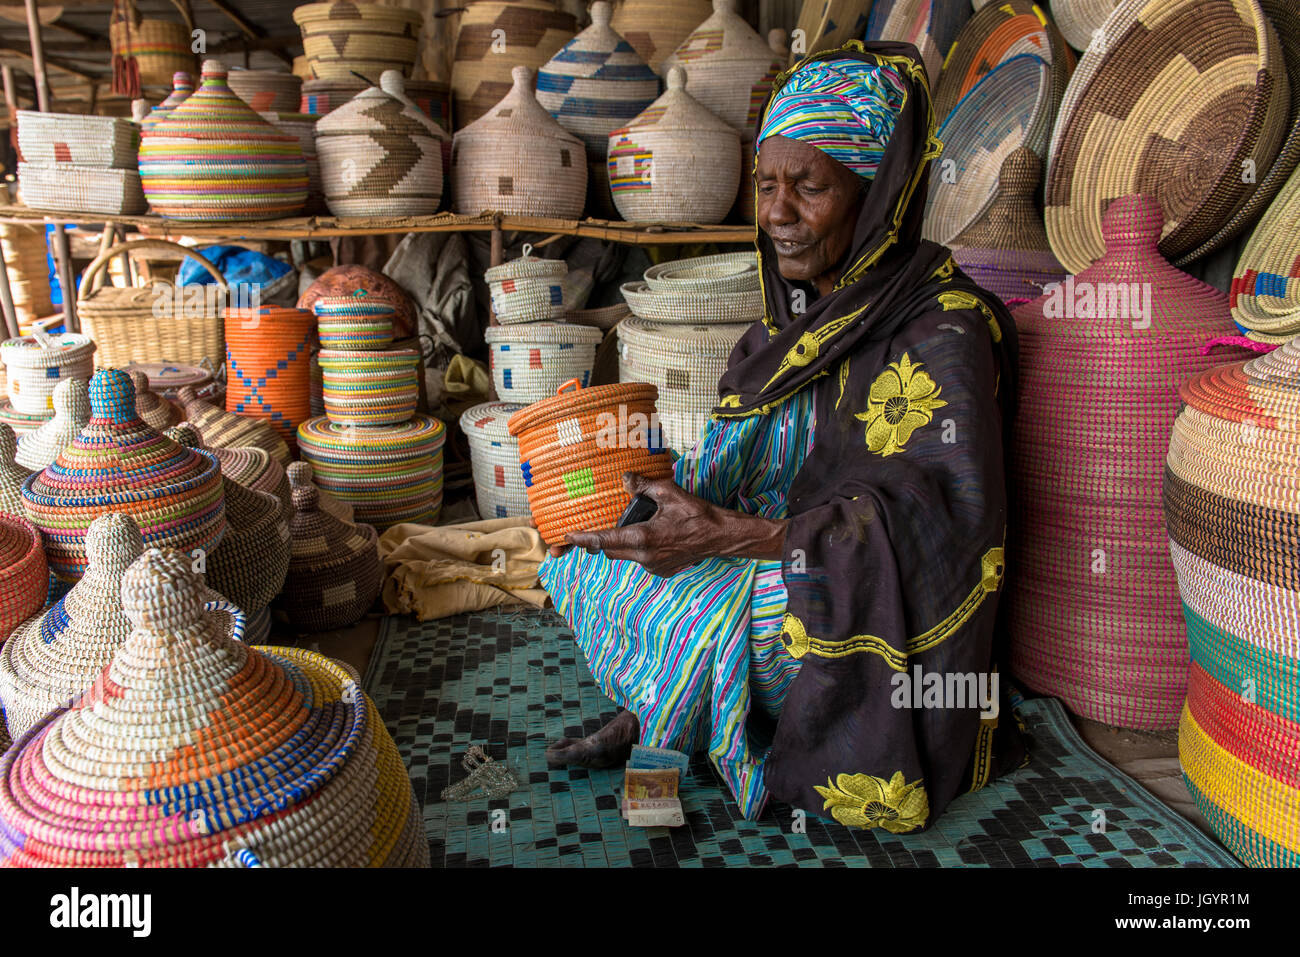 Handmade basket shop. Senegal. Stock Photo